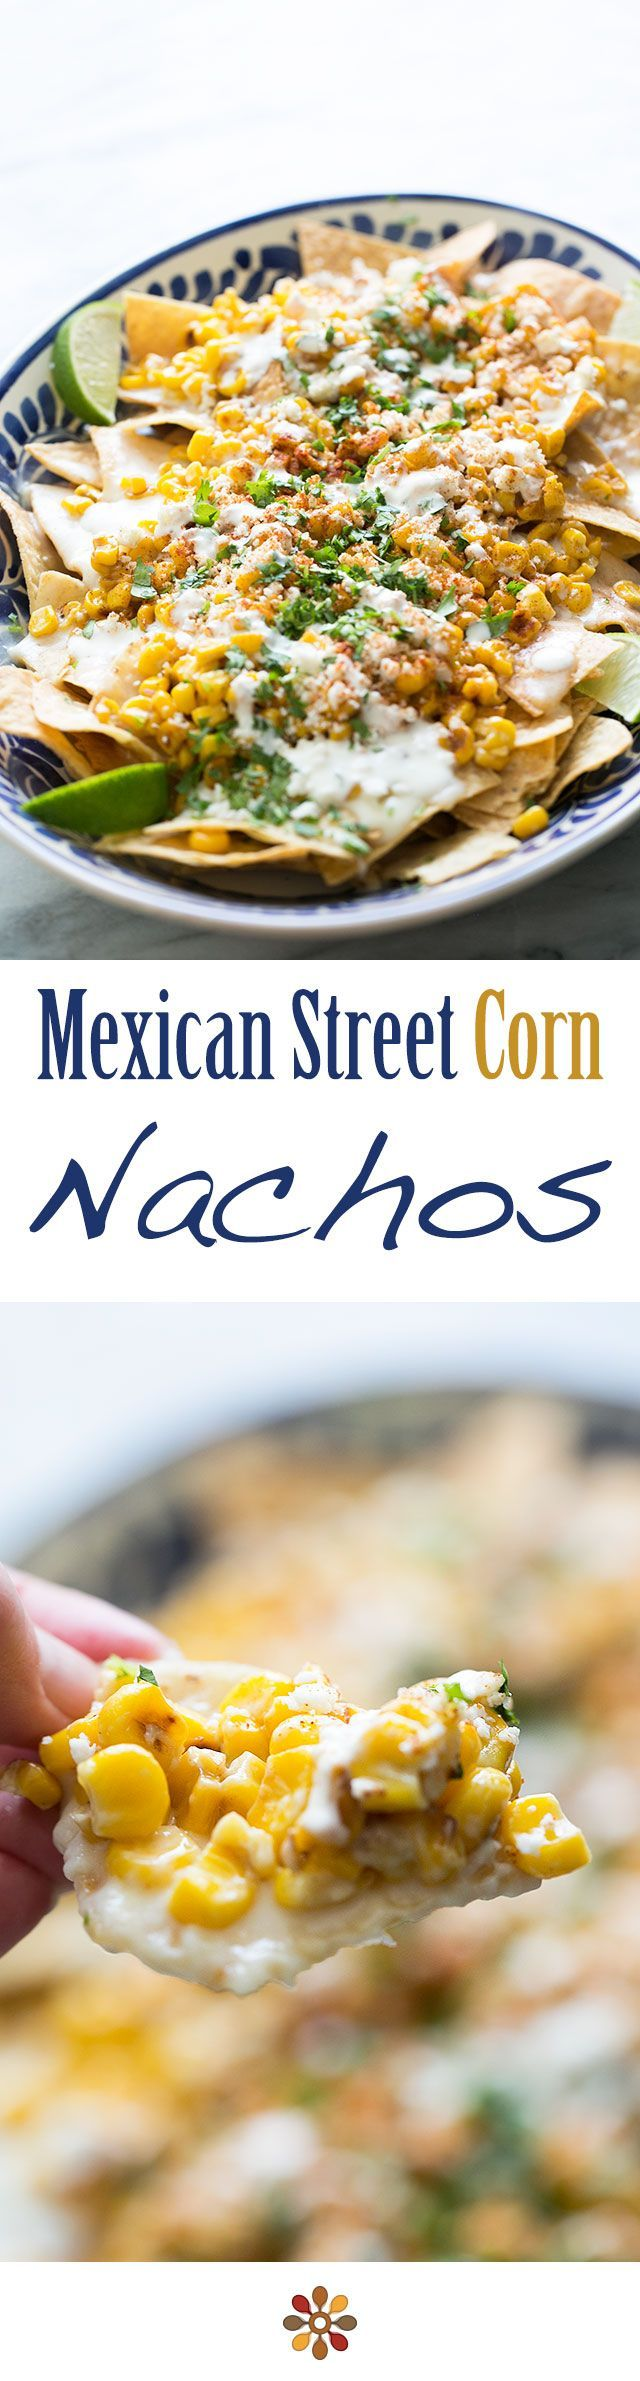 Street Corn Nachos! Tortilla chips topped a creamy monterey jack cheese sauce, toasted corn, crumbled cotija, chili powder and cilantro. Perfect for a #GameDay #SuperBowl gathering or fiesta! On SimplyRecipes.com